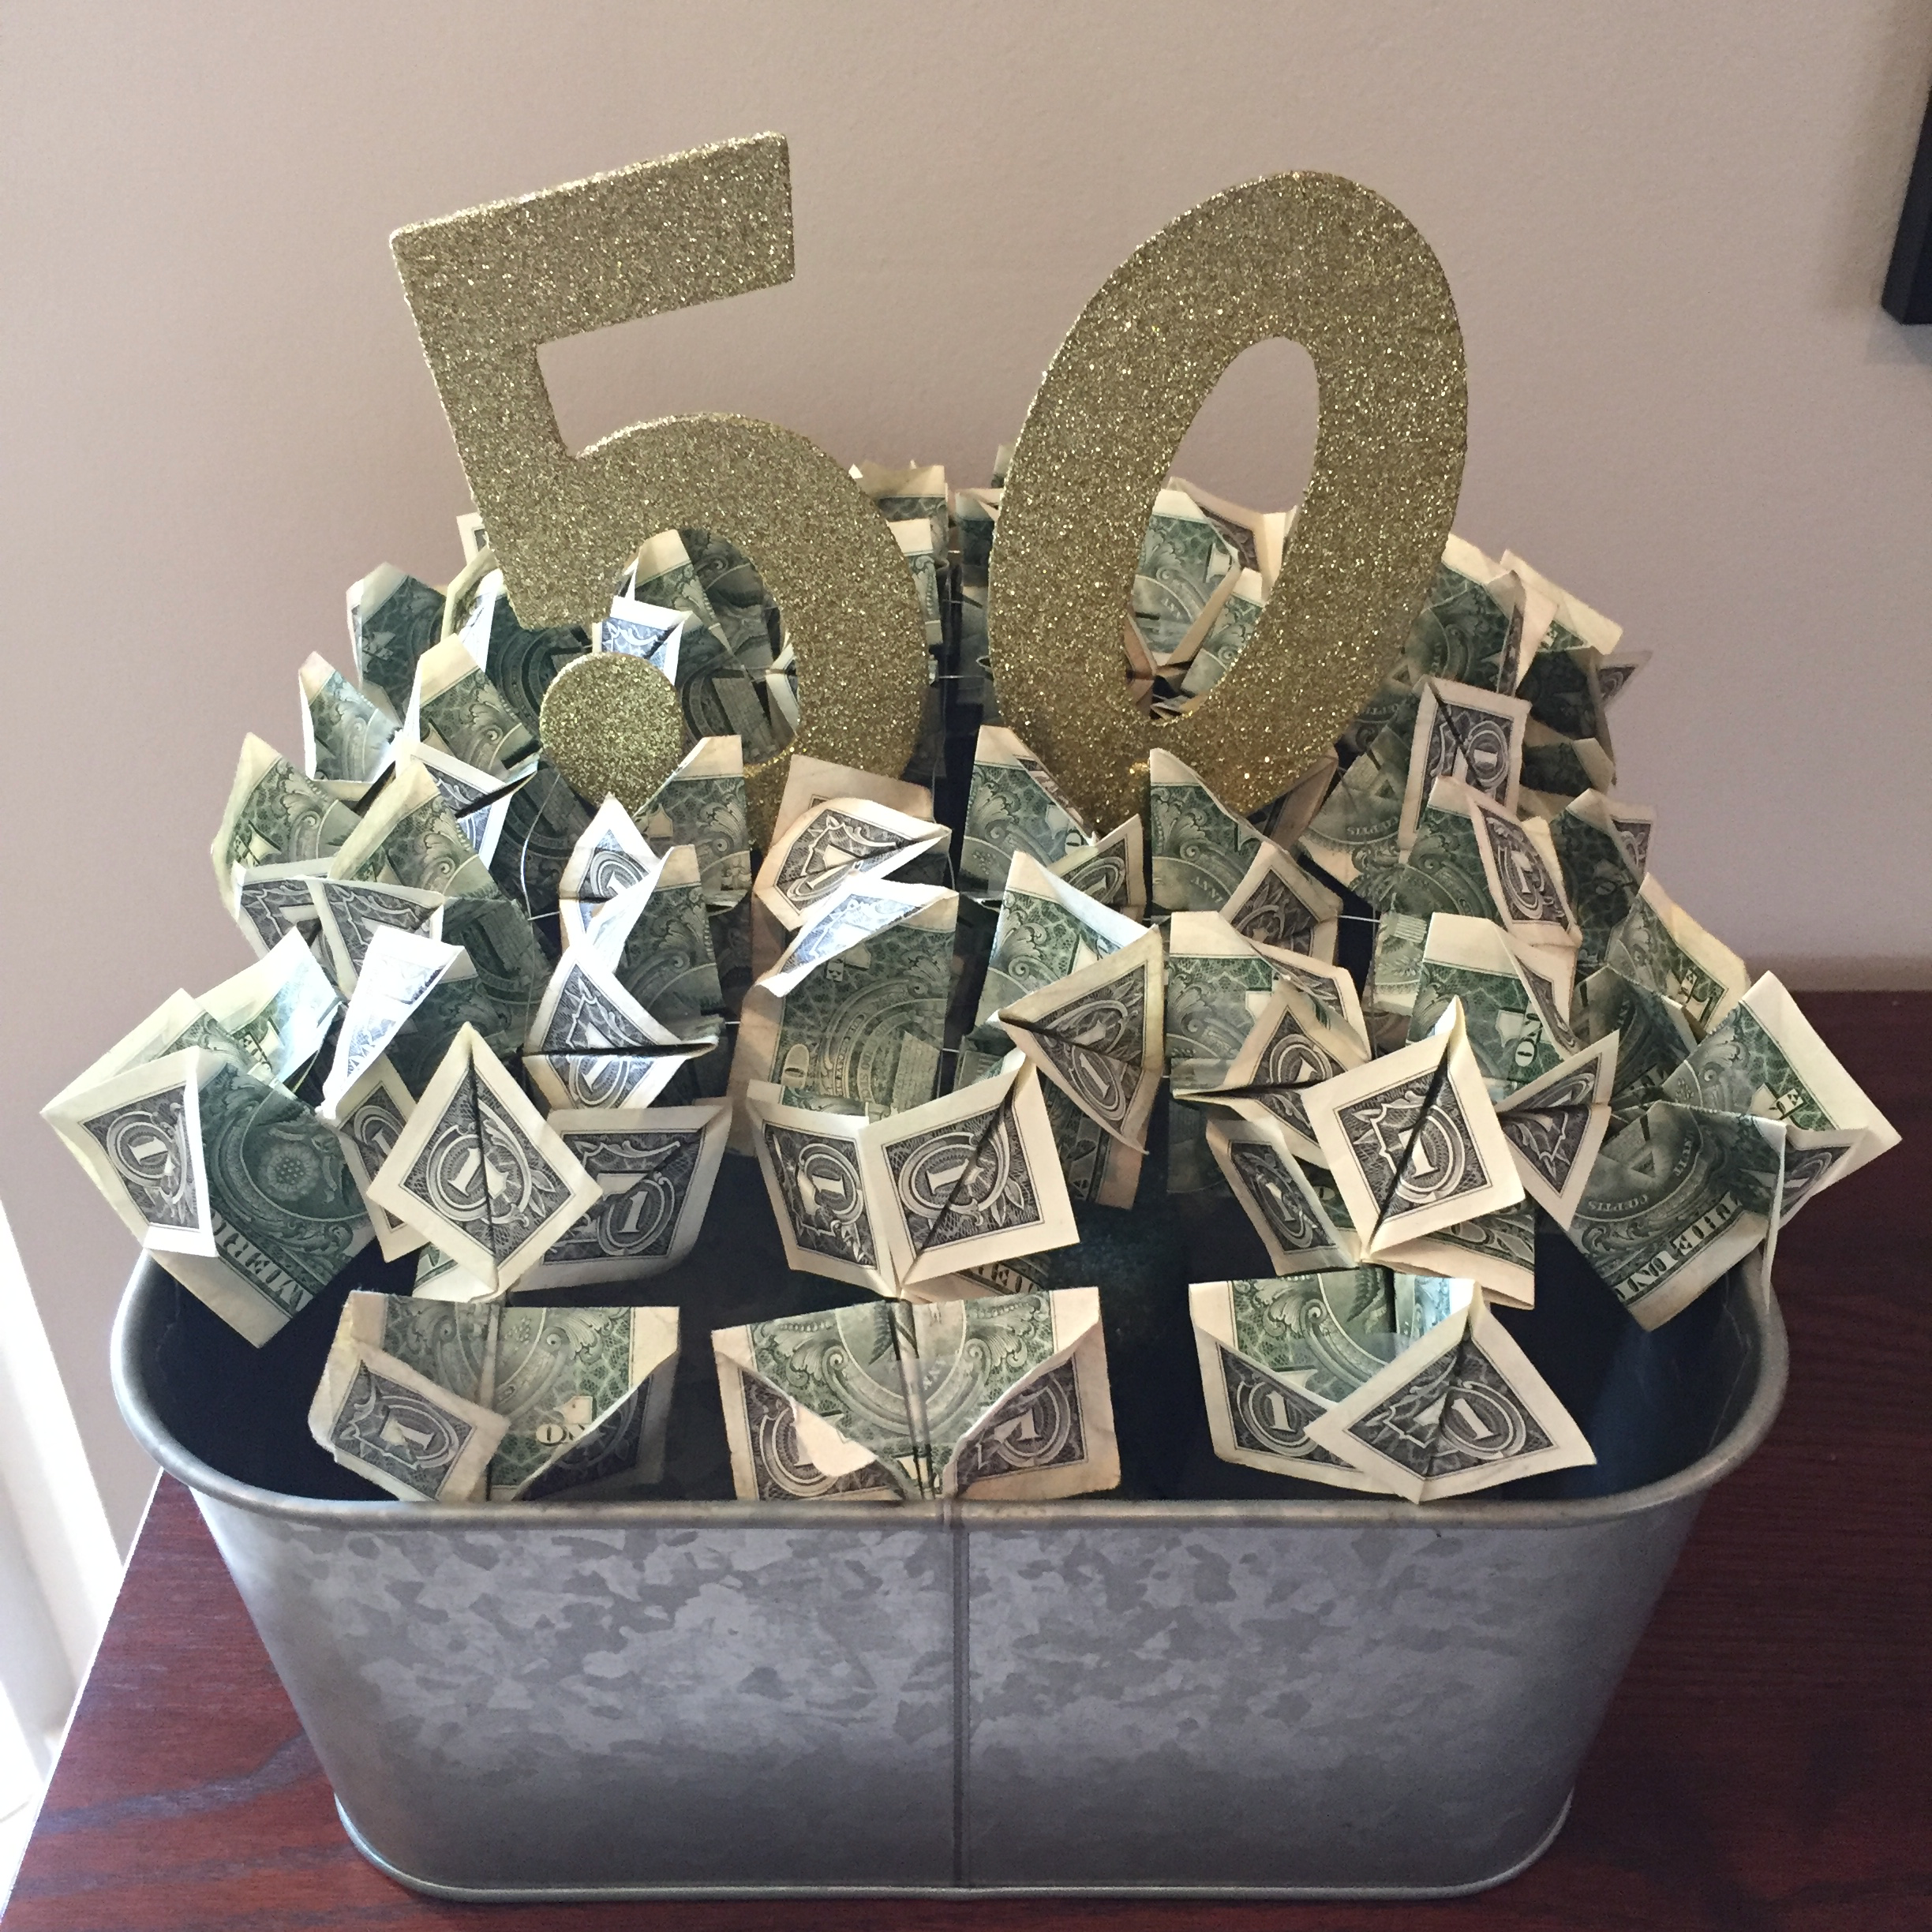 Free Birthday Money ~ Th anniversary birthday money tree bush shrub feel free to comment with questions concerning